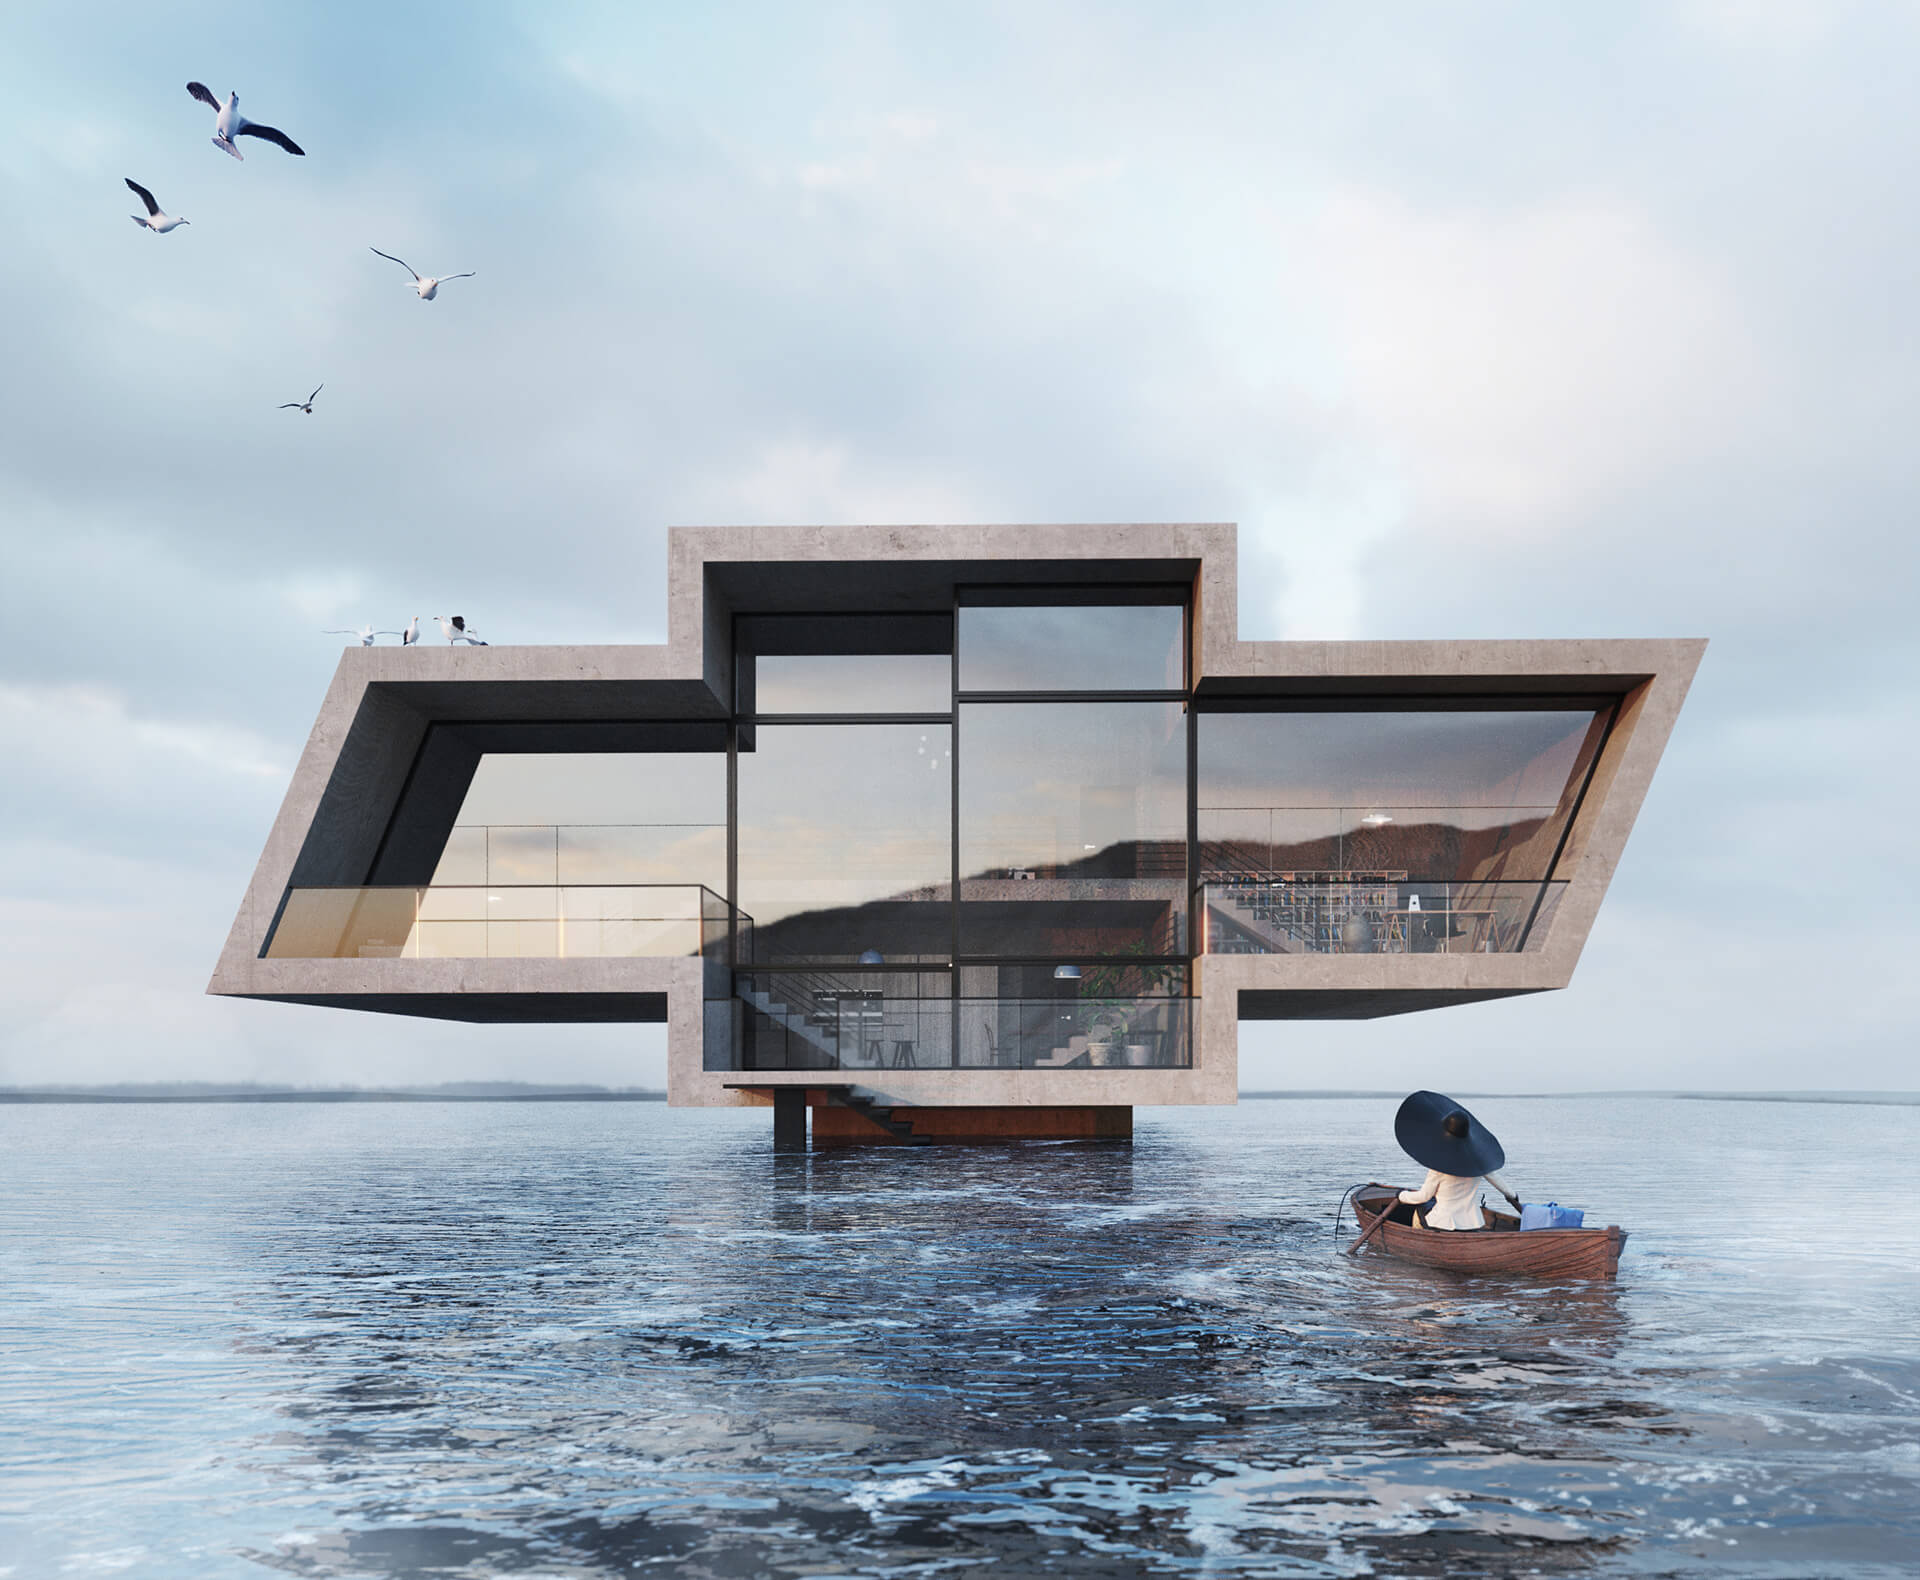 Crosshouse is imagined over a body of water, and is inspired by Chevrolet's logo| Karina Wiciak of Wamhouse Studio conceptualises house designs inspired by brand logos | STIRworld